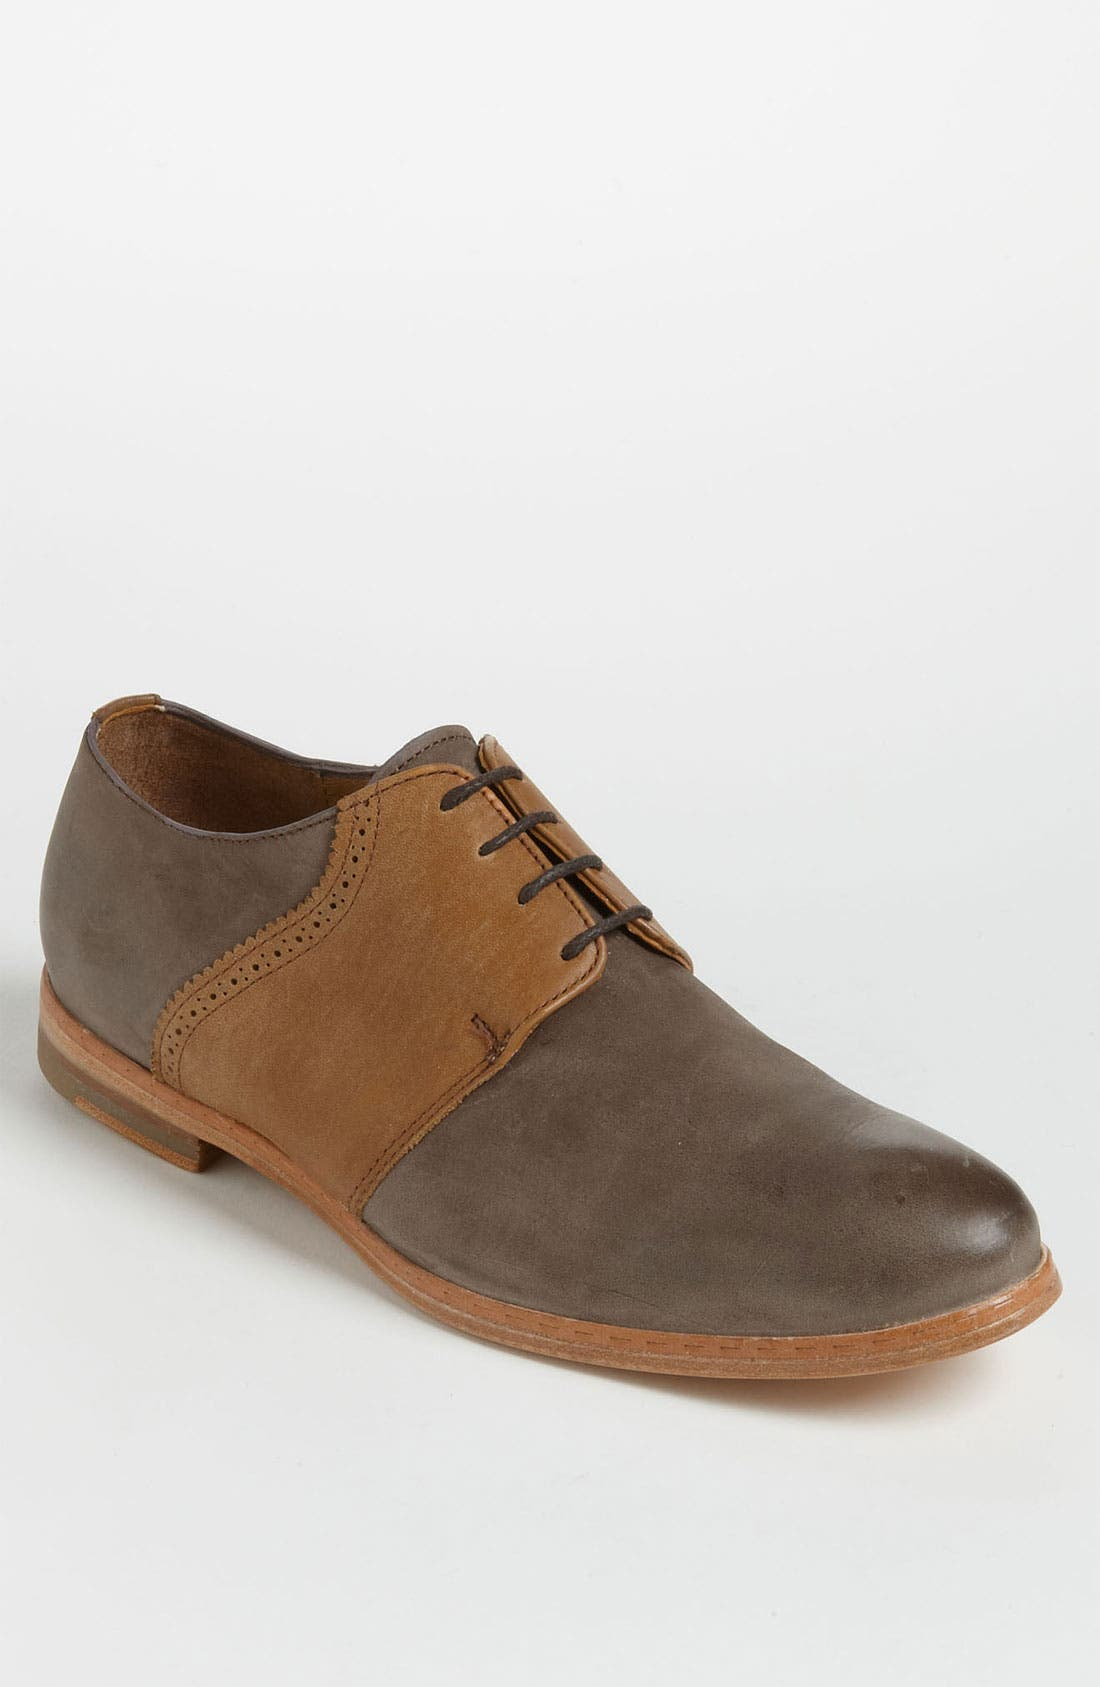 Alternate Image 1 Selected - J.D. Fisk 'Mosimo' Saddle Shoe